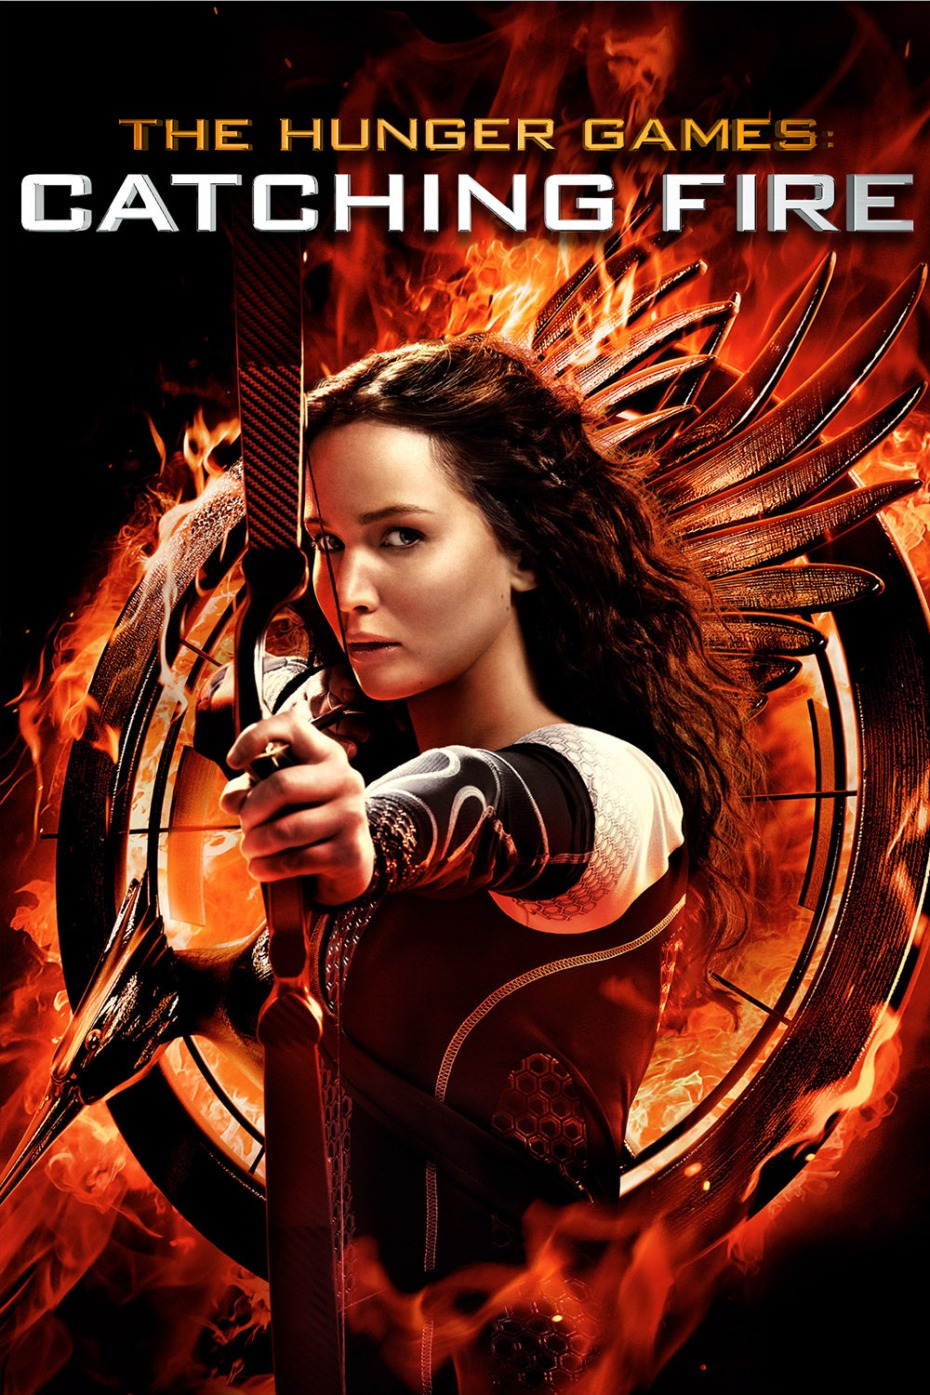 The Hunger Games - Catching Fire